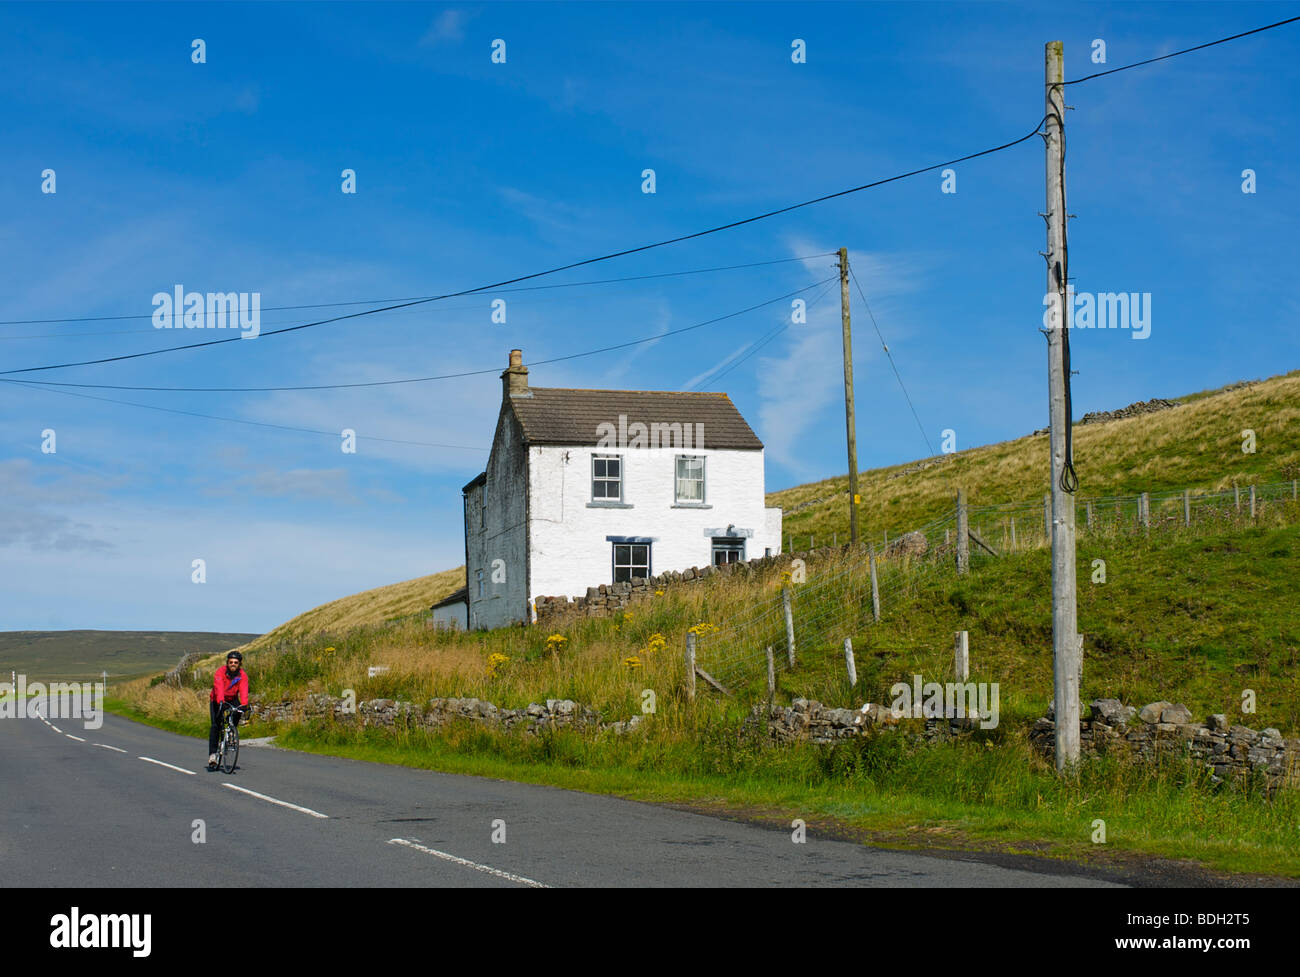 Cyclist in Upper Teesdale, County Durham, England UK - Stock Image